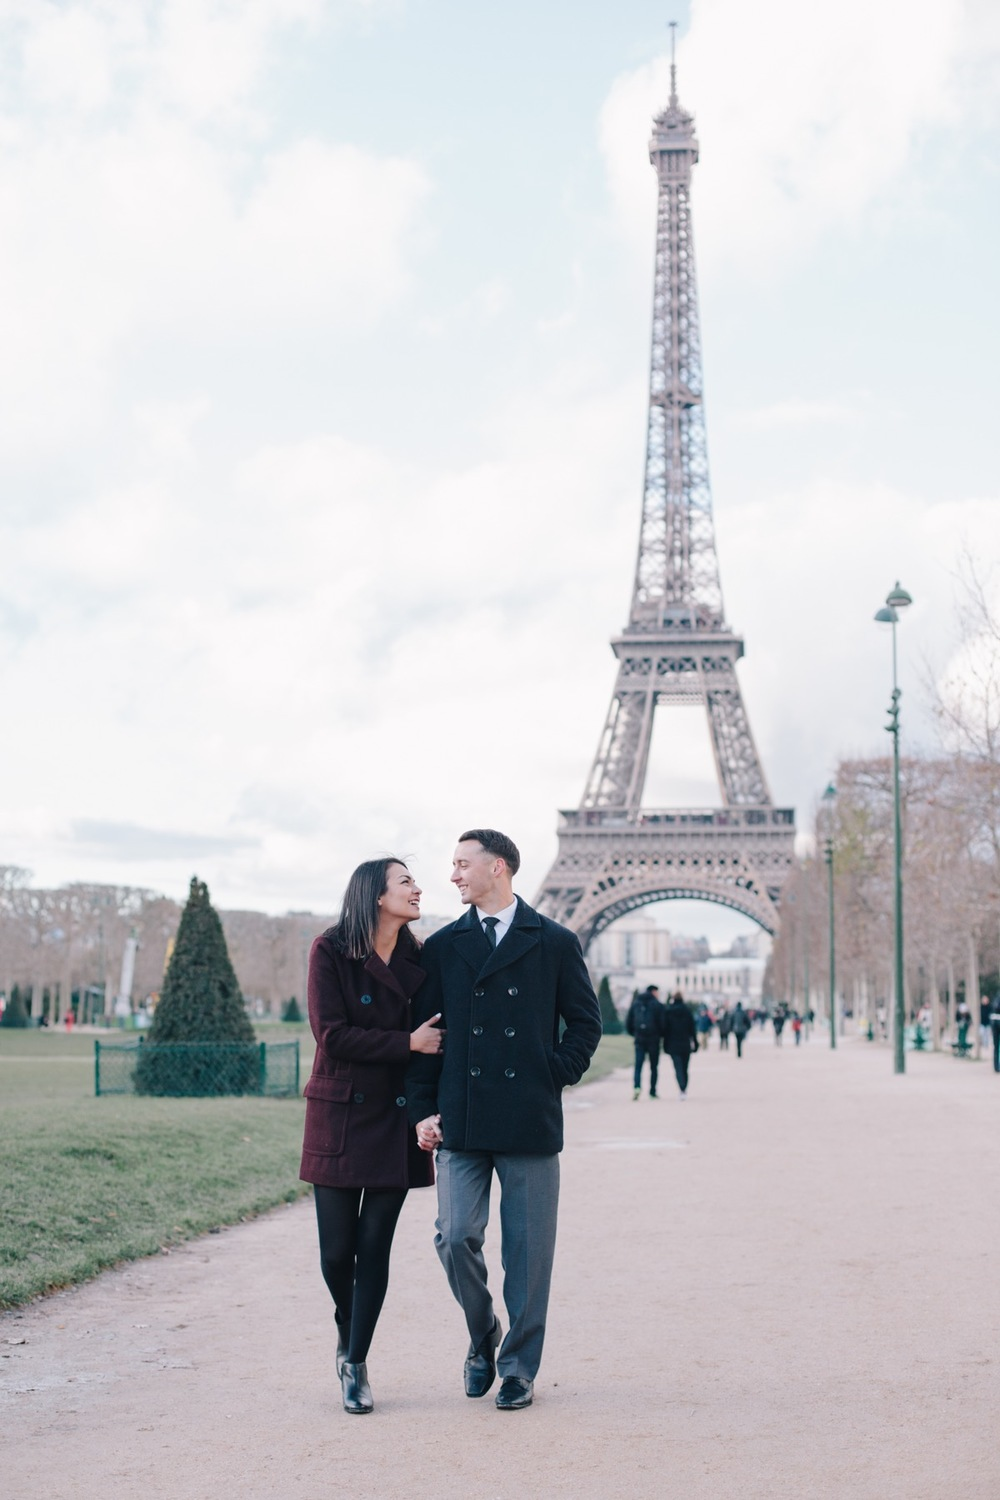 Romantic Paris Engagement Shoot | Paris Vacation Photographer Flytographer